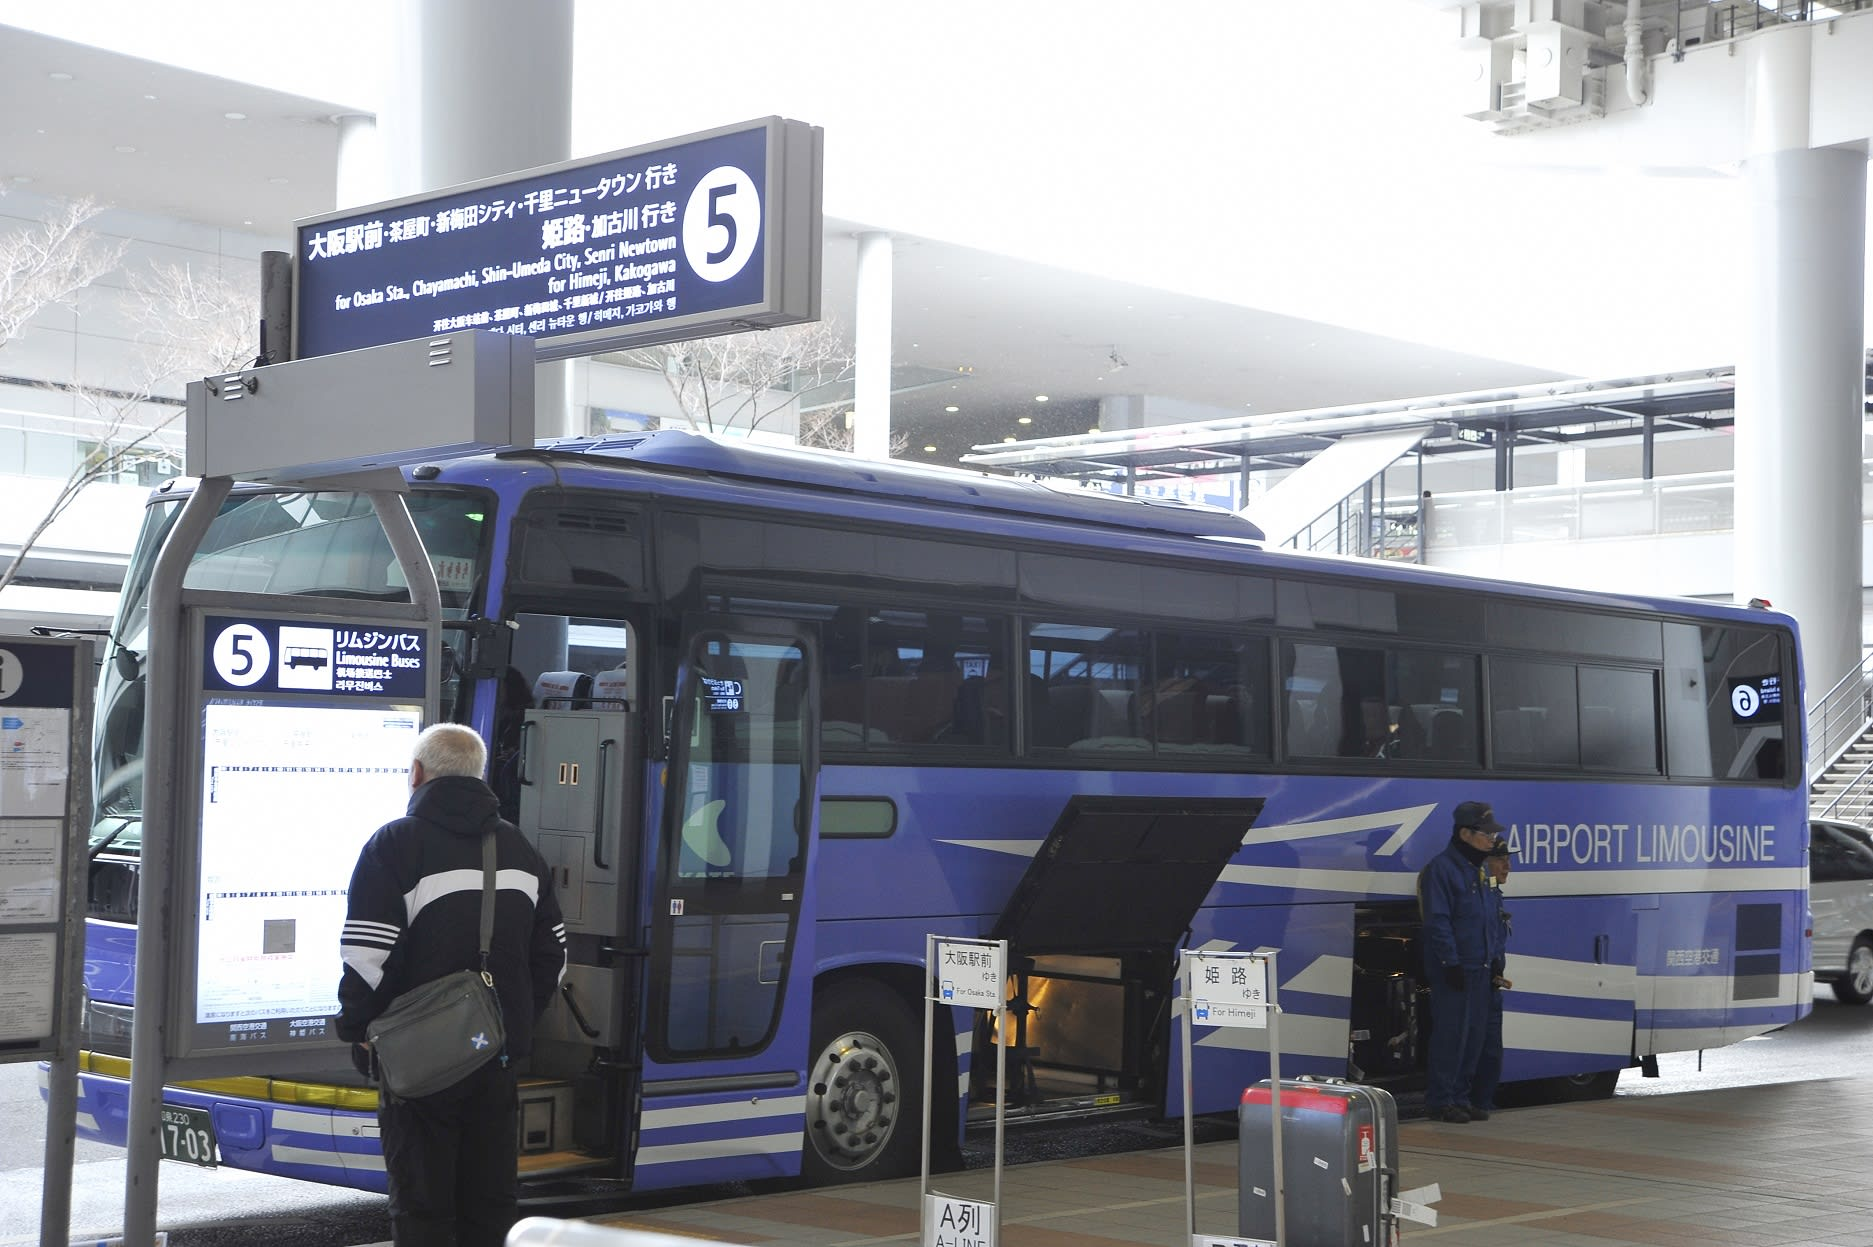 HARUKAS 300 Airport Limousine Bus Tickets